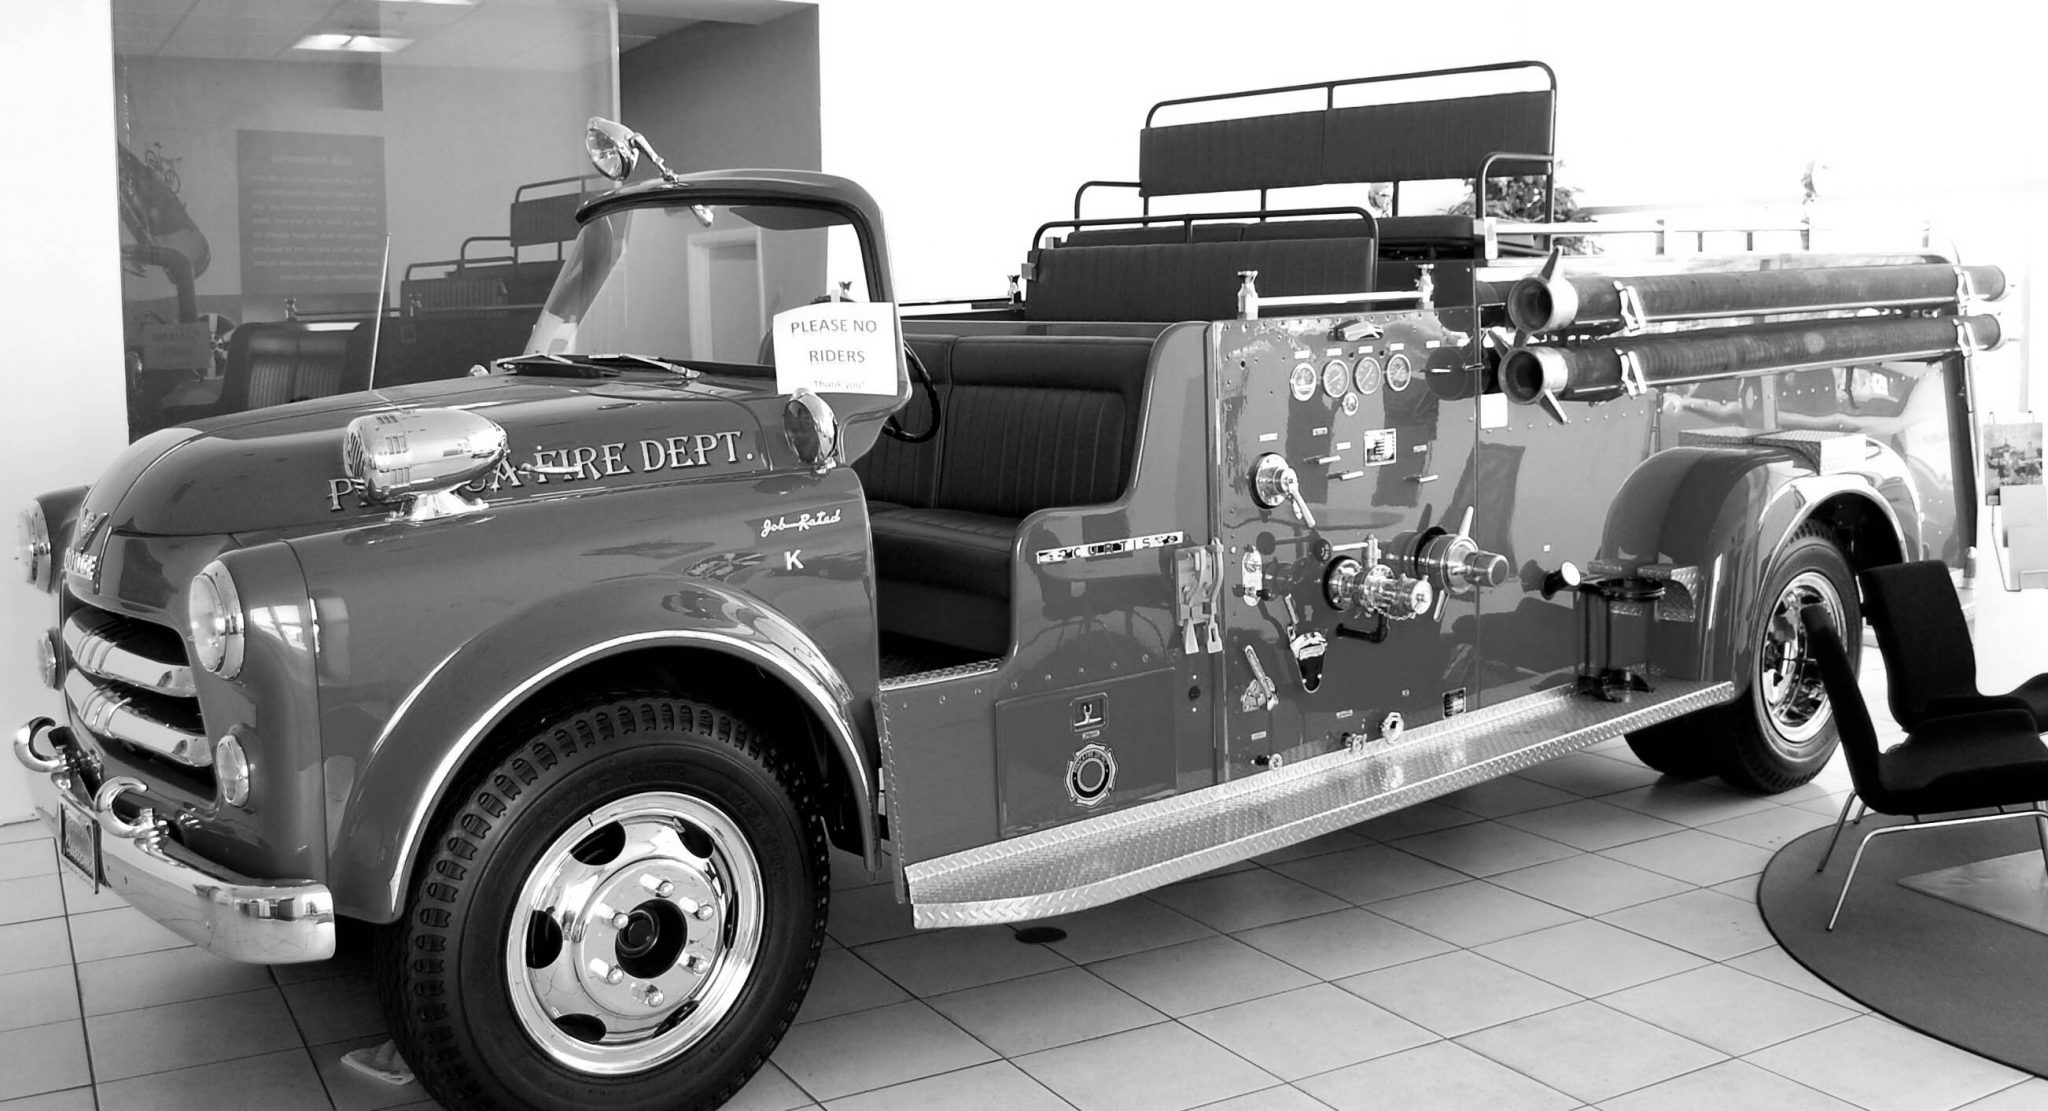 Restored historic Findlay fire truck finds new home